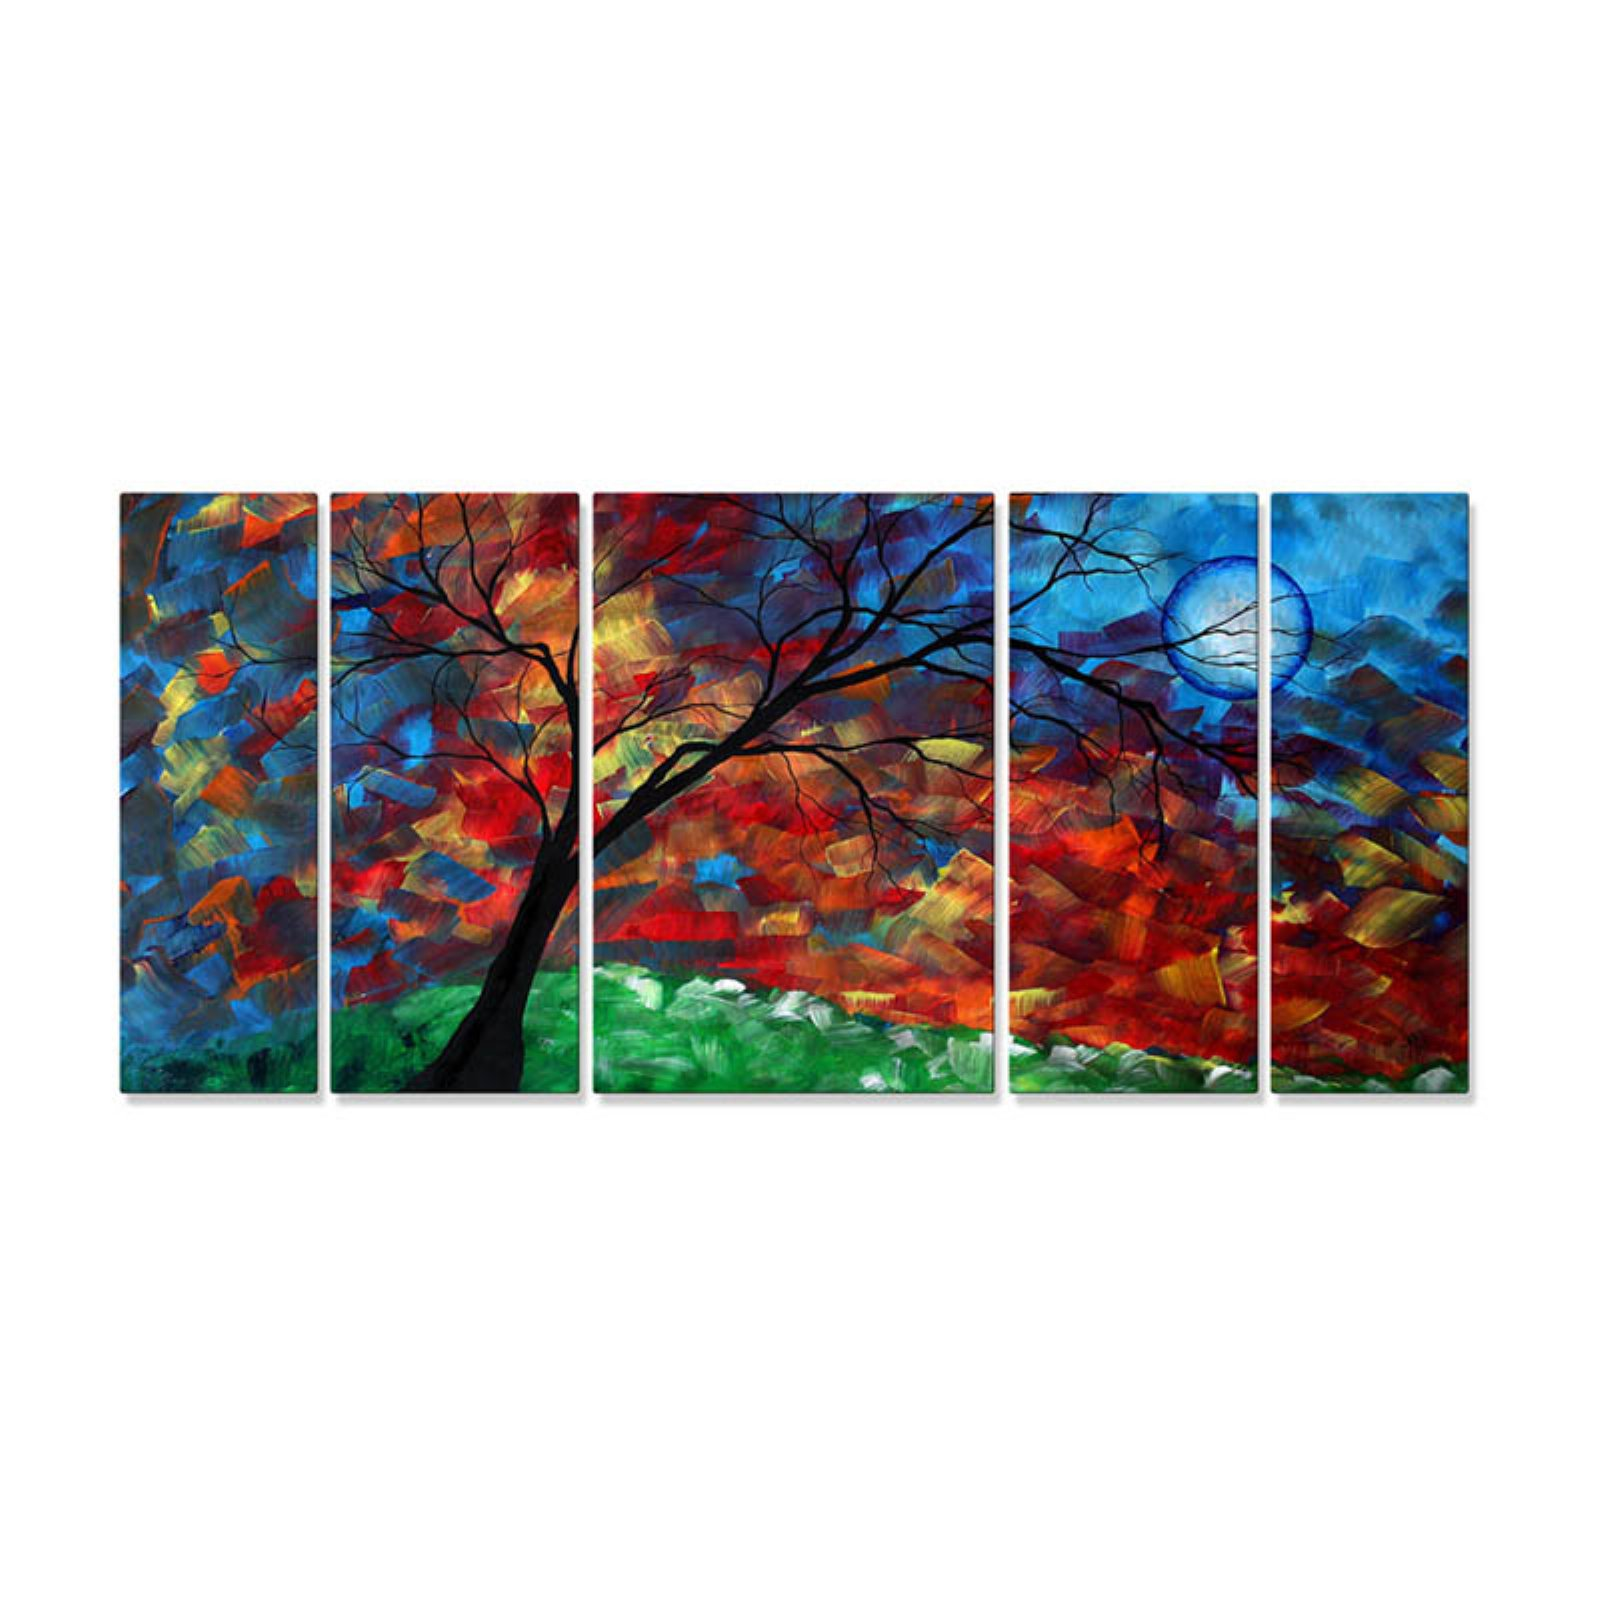 Warm Wind Blowing Metal Wall Art - 56W x 23.5H in.